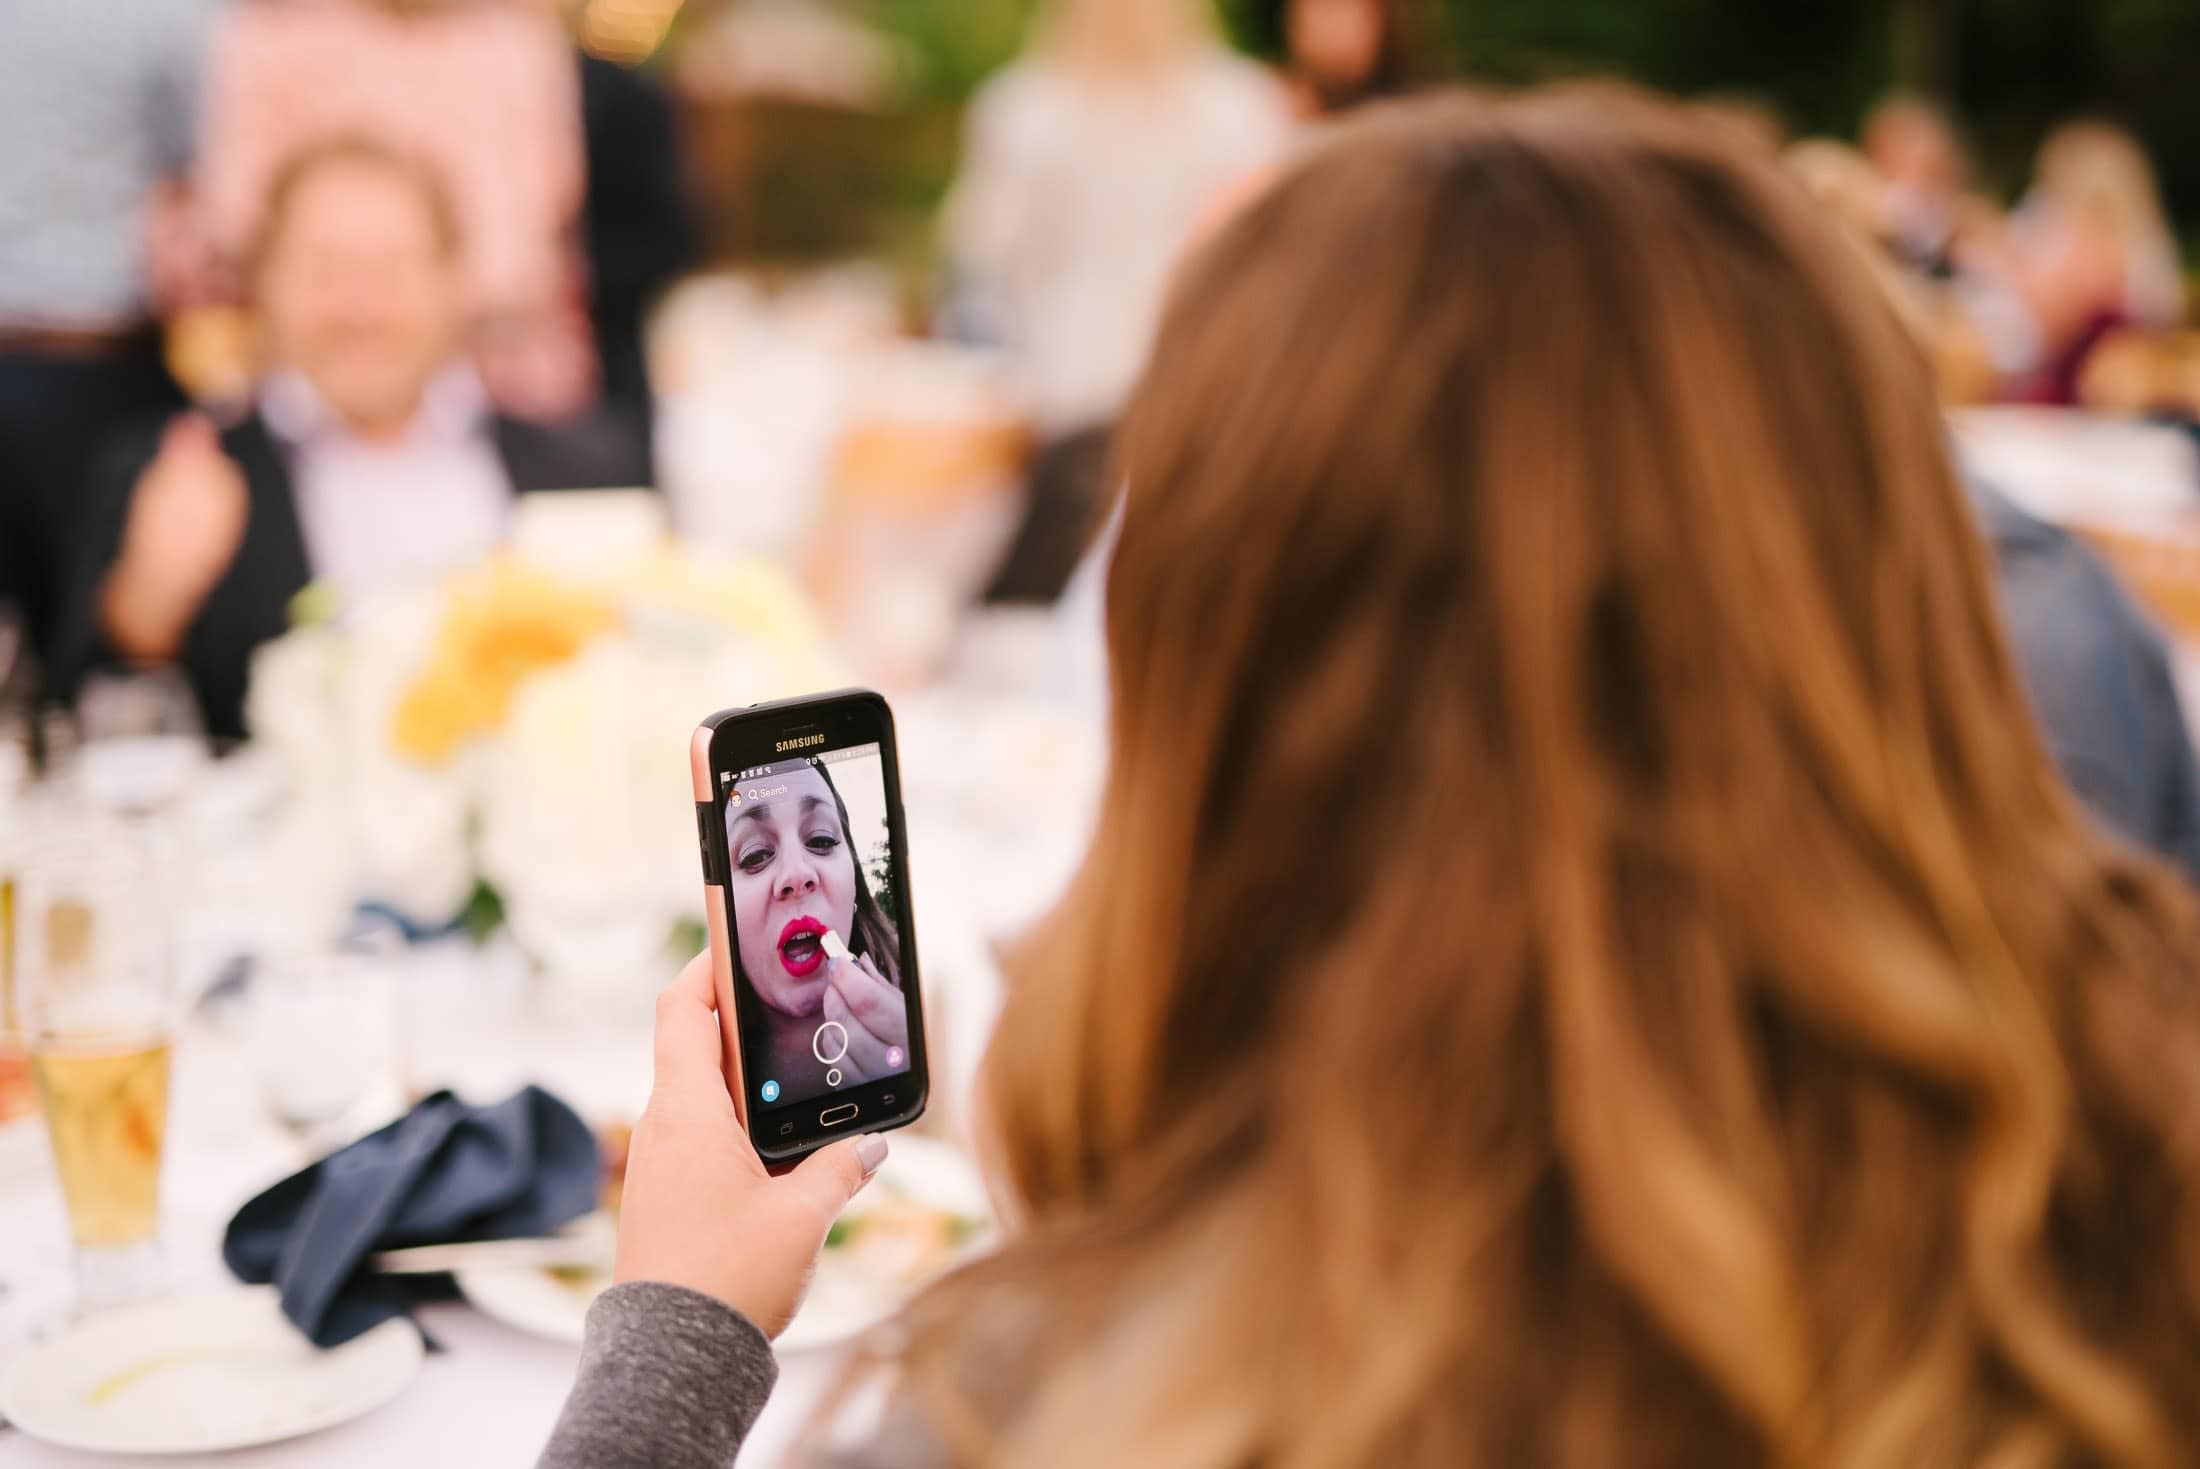 Great Pic of woman putting on lipstick at wedding